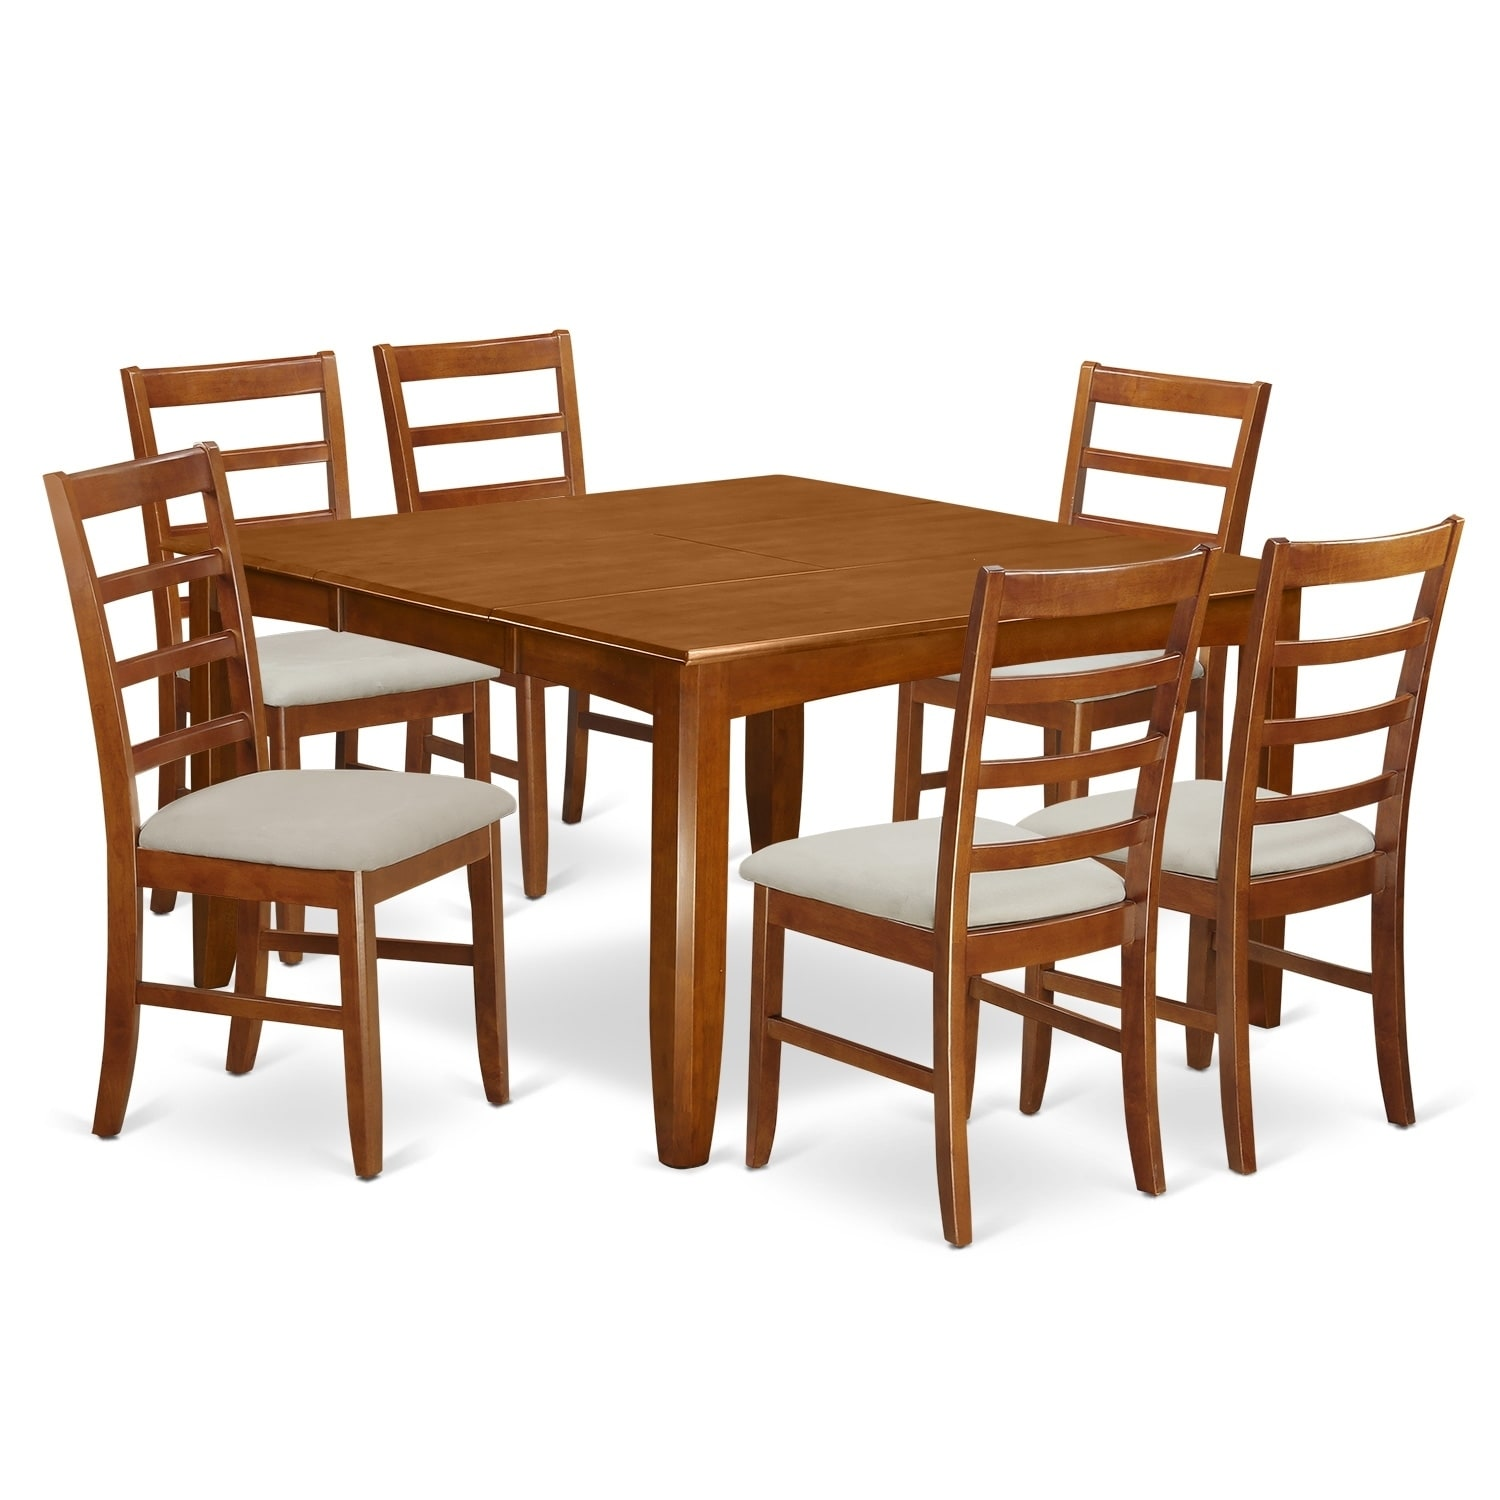 PARF7-SBR 7 Pc Dining set-Square Table and 6 Chairs. (Mic...